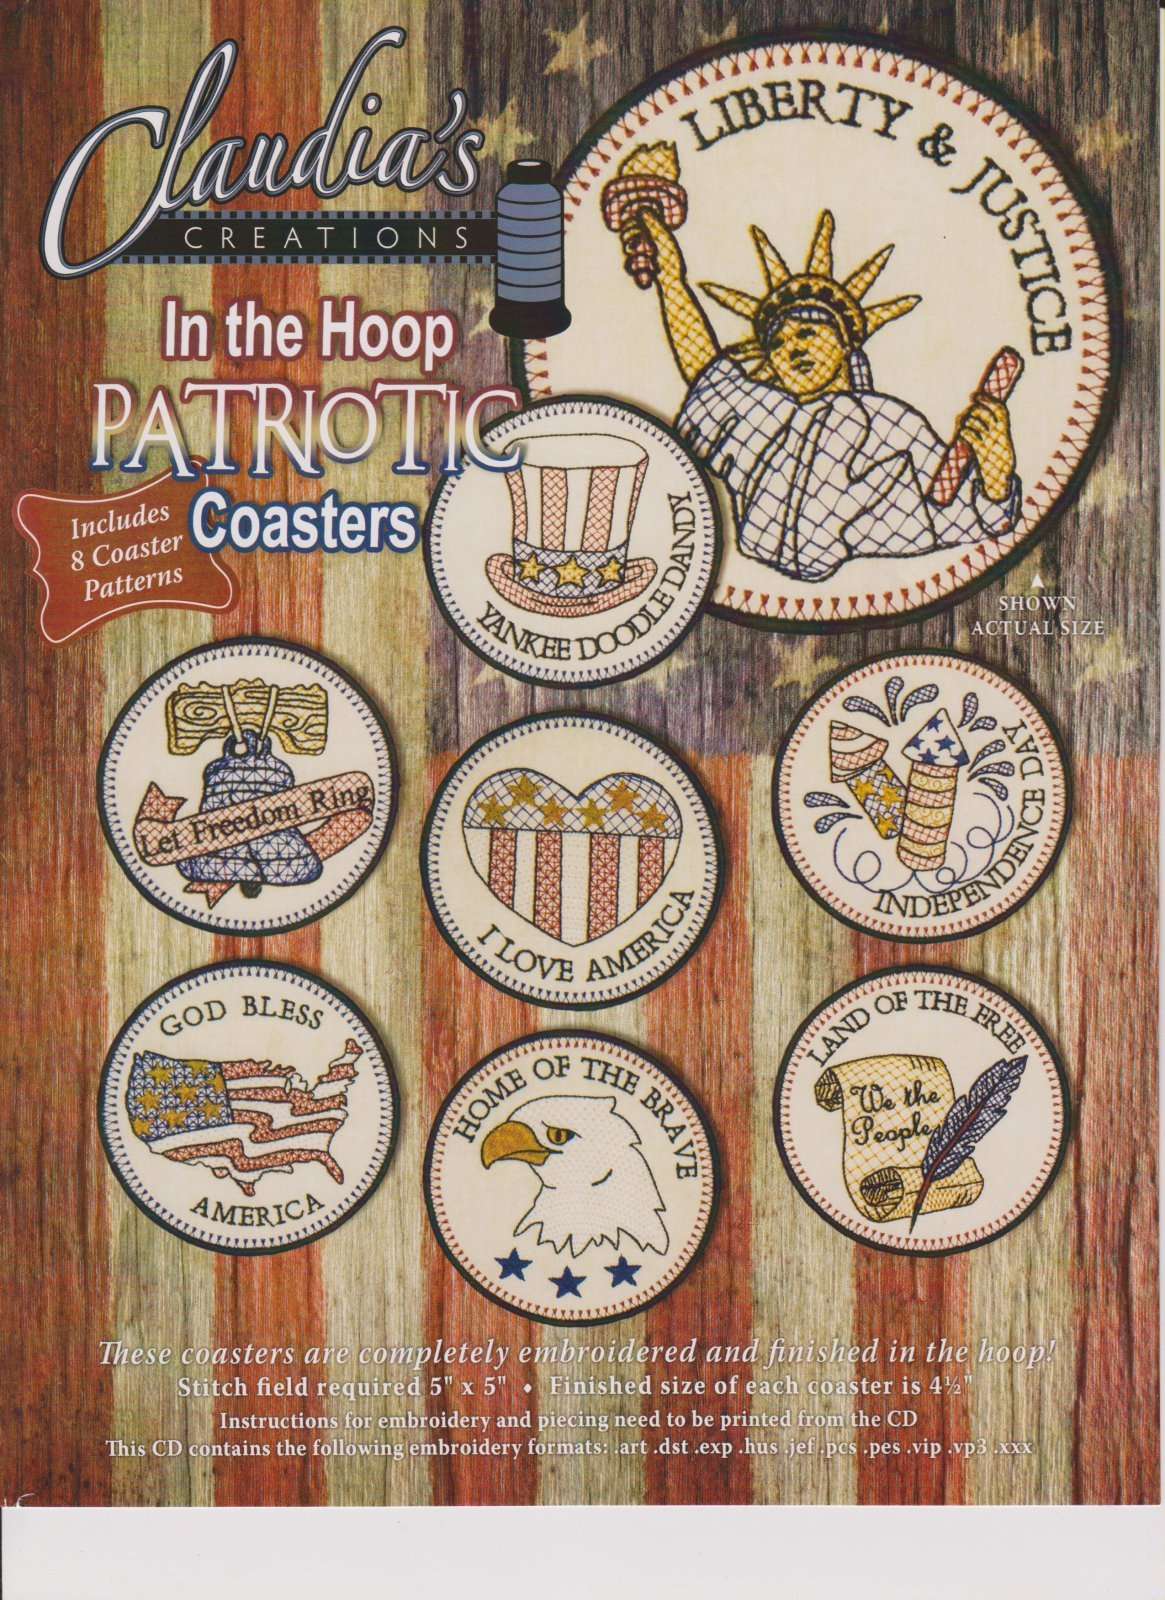 In The Hoop Patriotic Coasters <br> Claudia's Creations